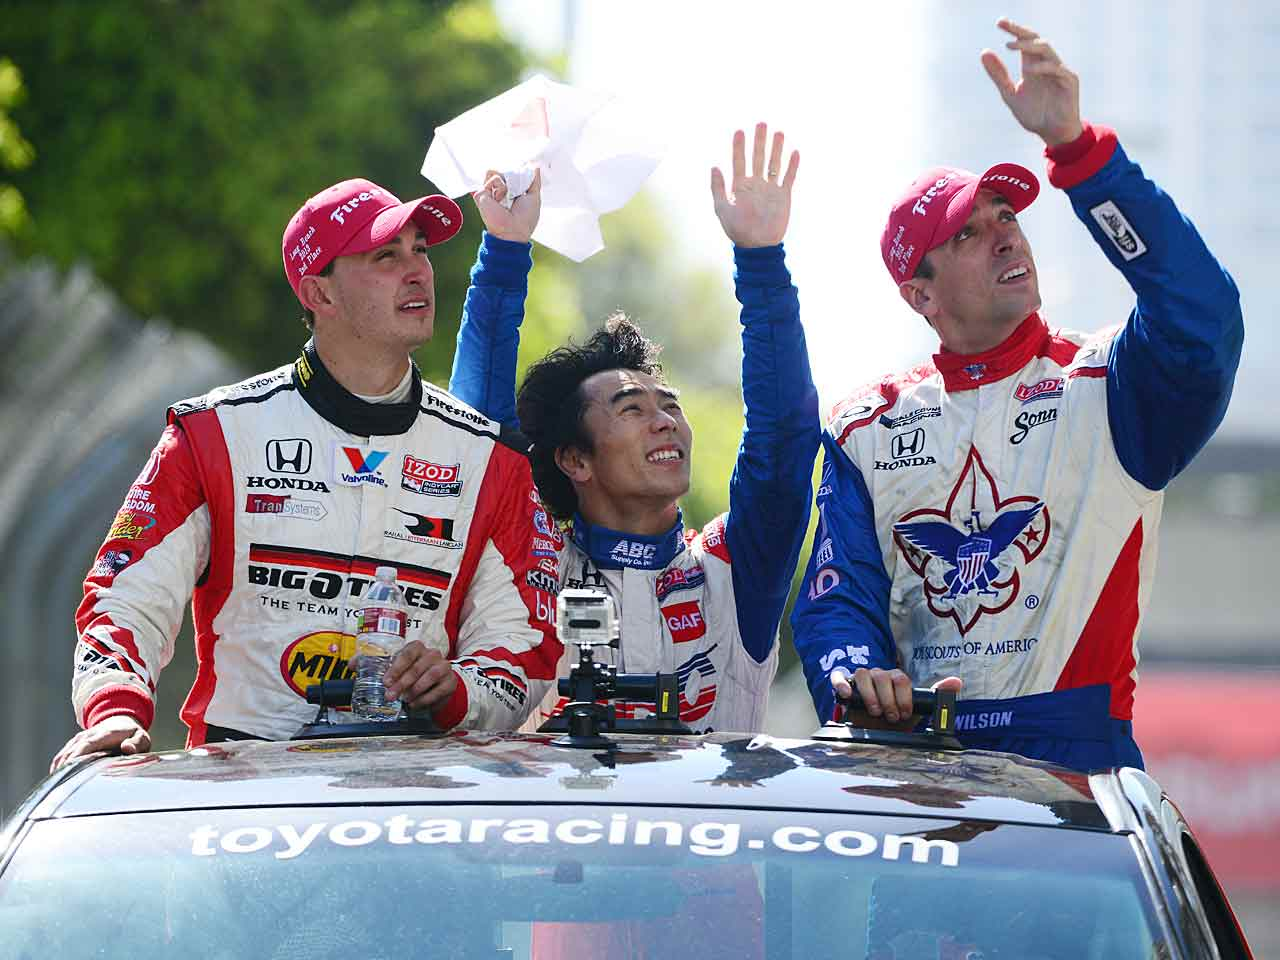 """Former teammate Graham Rahal (left with Takuma Sato, center) said of Wilson, """"A lot of drivers are great because they're selfish. But Justin was always the first guy to come up to me and say something positive, something constructive, something helpful. You mention 'team player,' that's Justin, and it's hard to find that sort of guy in sports. He was just the nicest guy out there."""""""